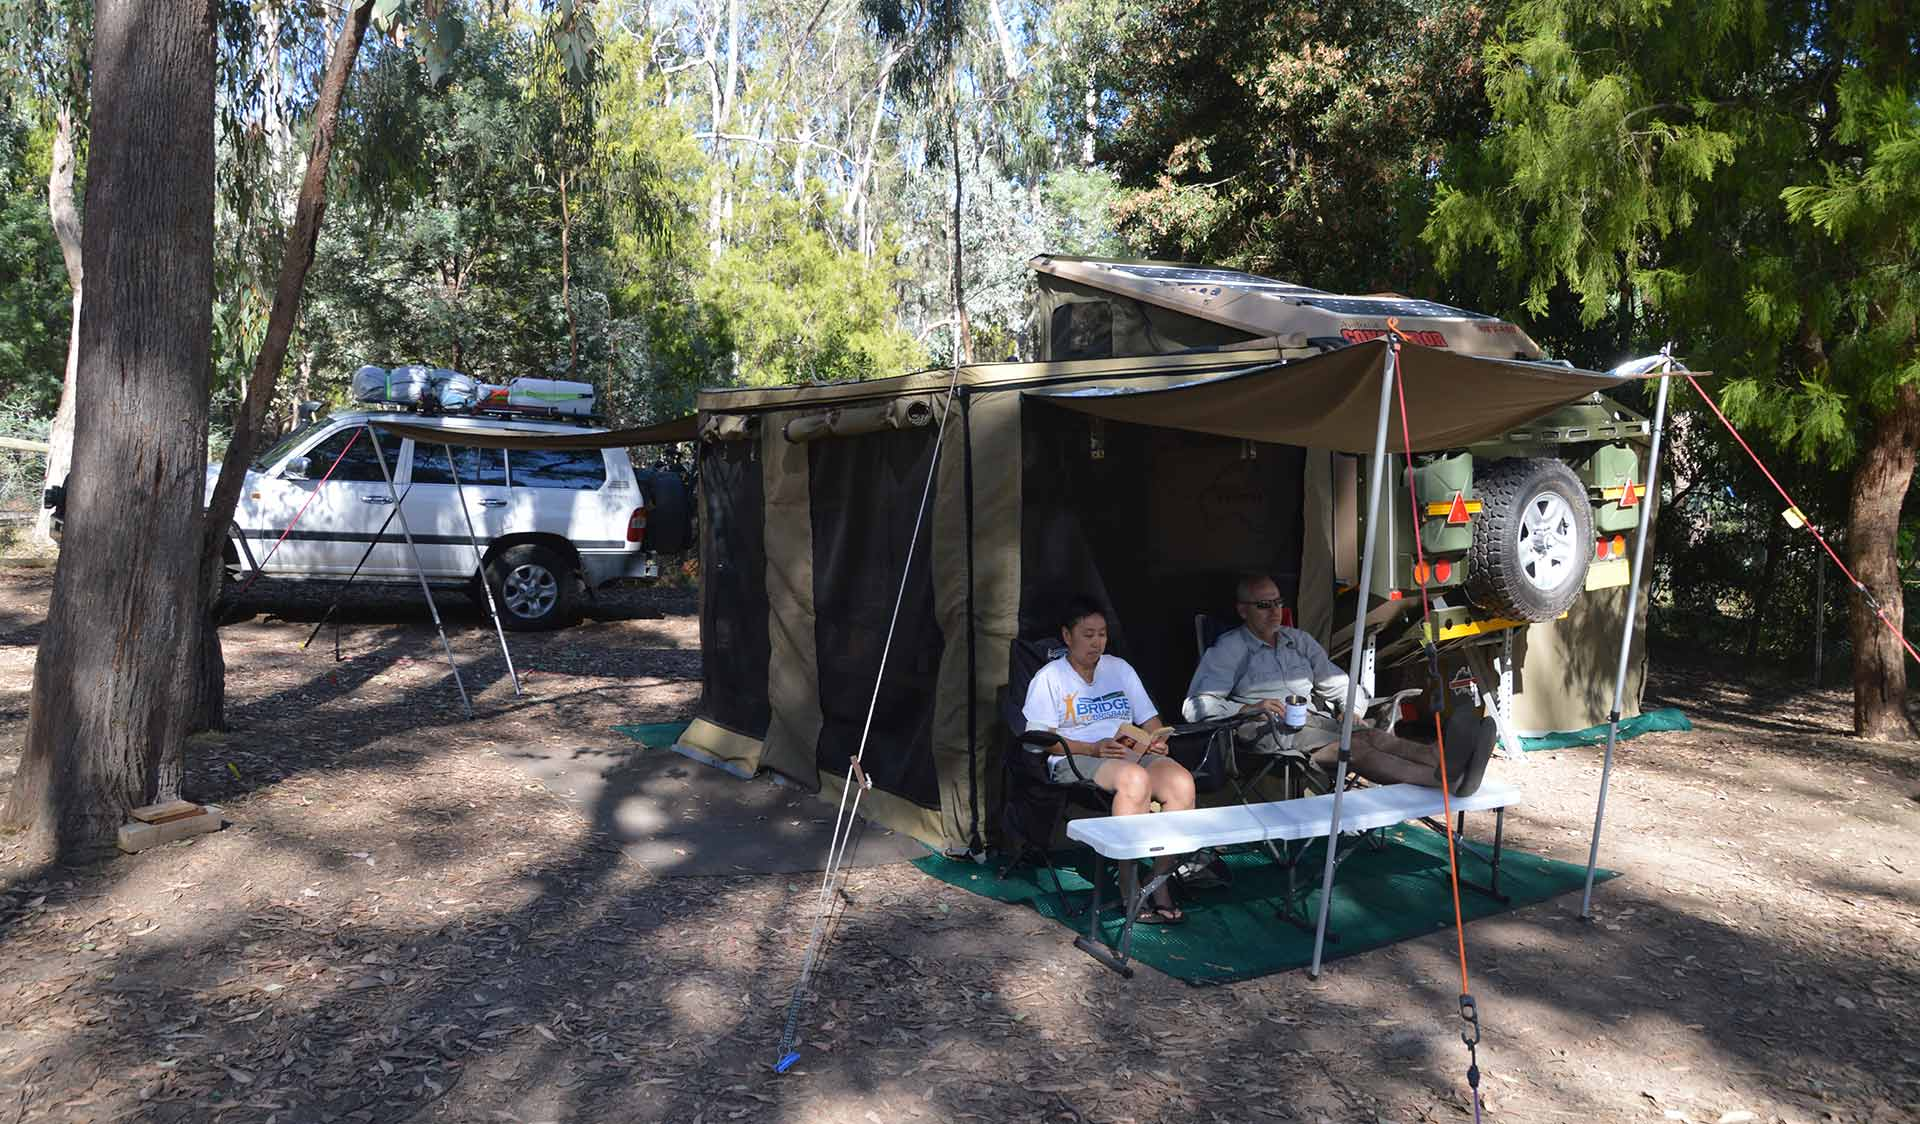 Two friends relax under the shelter of their camper trailer at Fraser Camping Area in the Lake Eildon National Park.